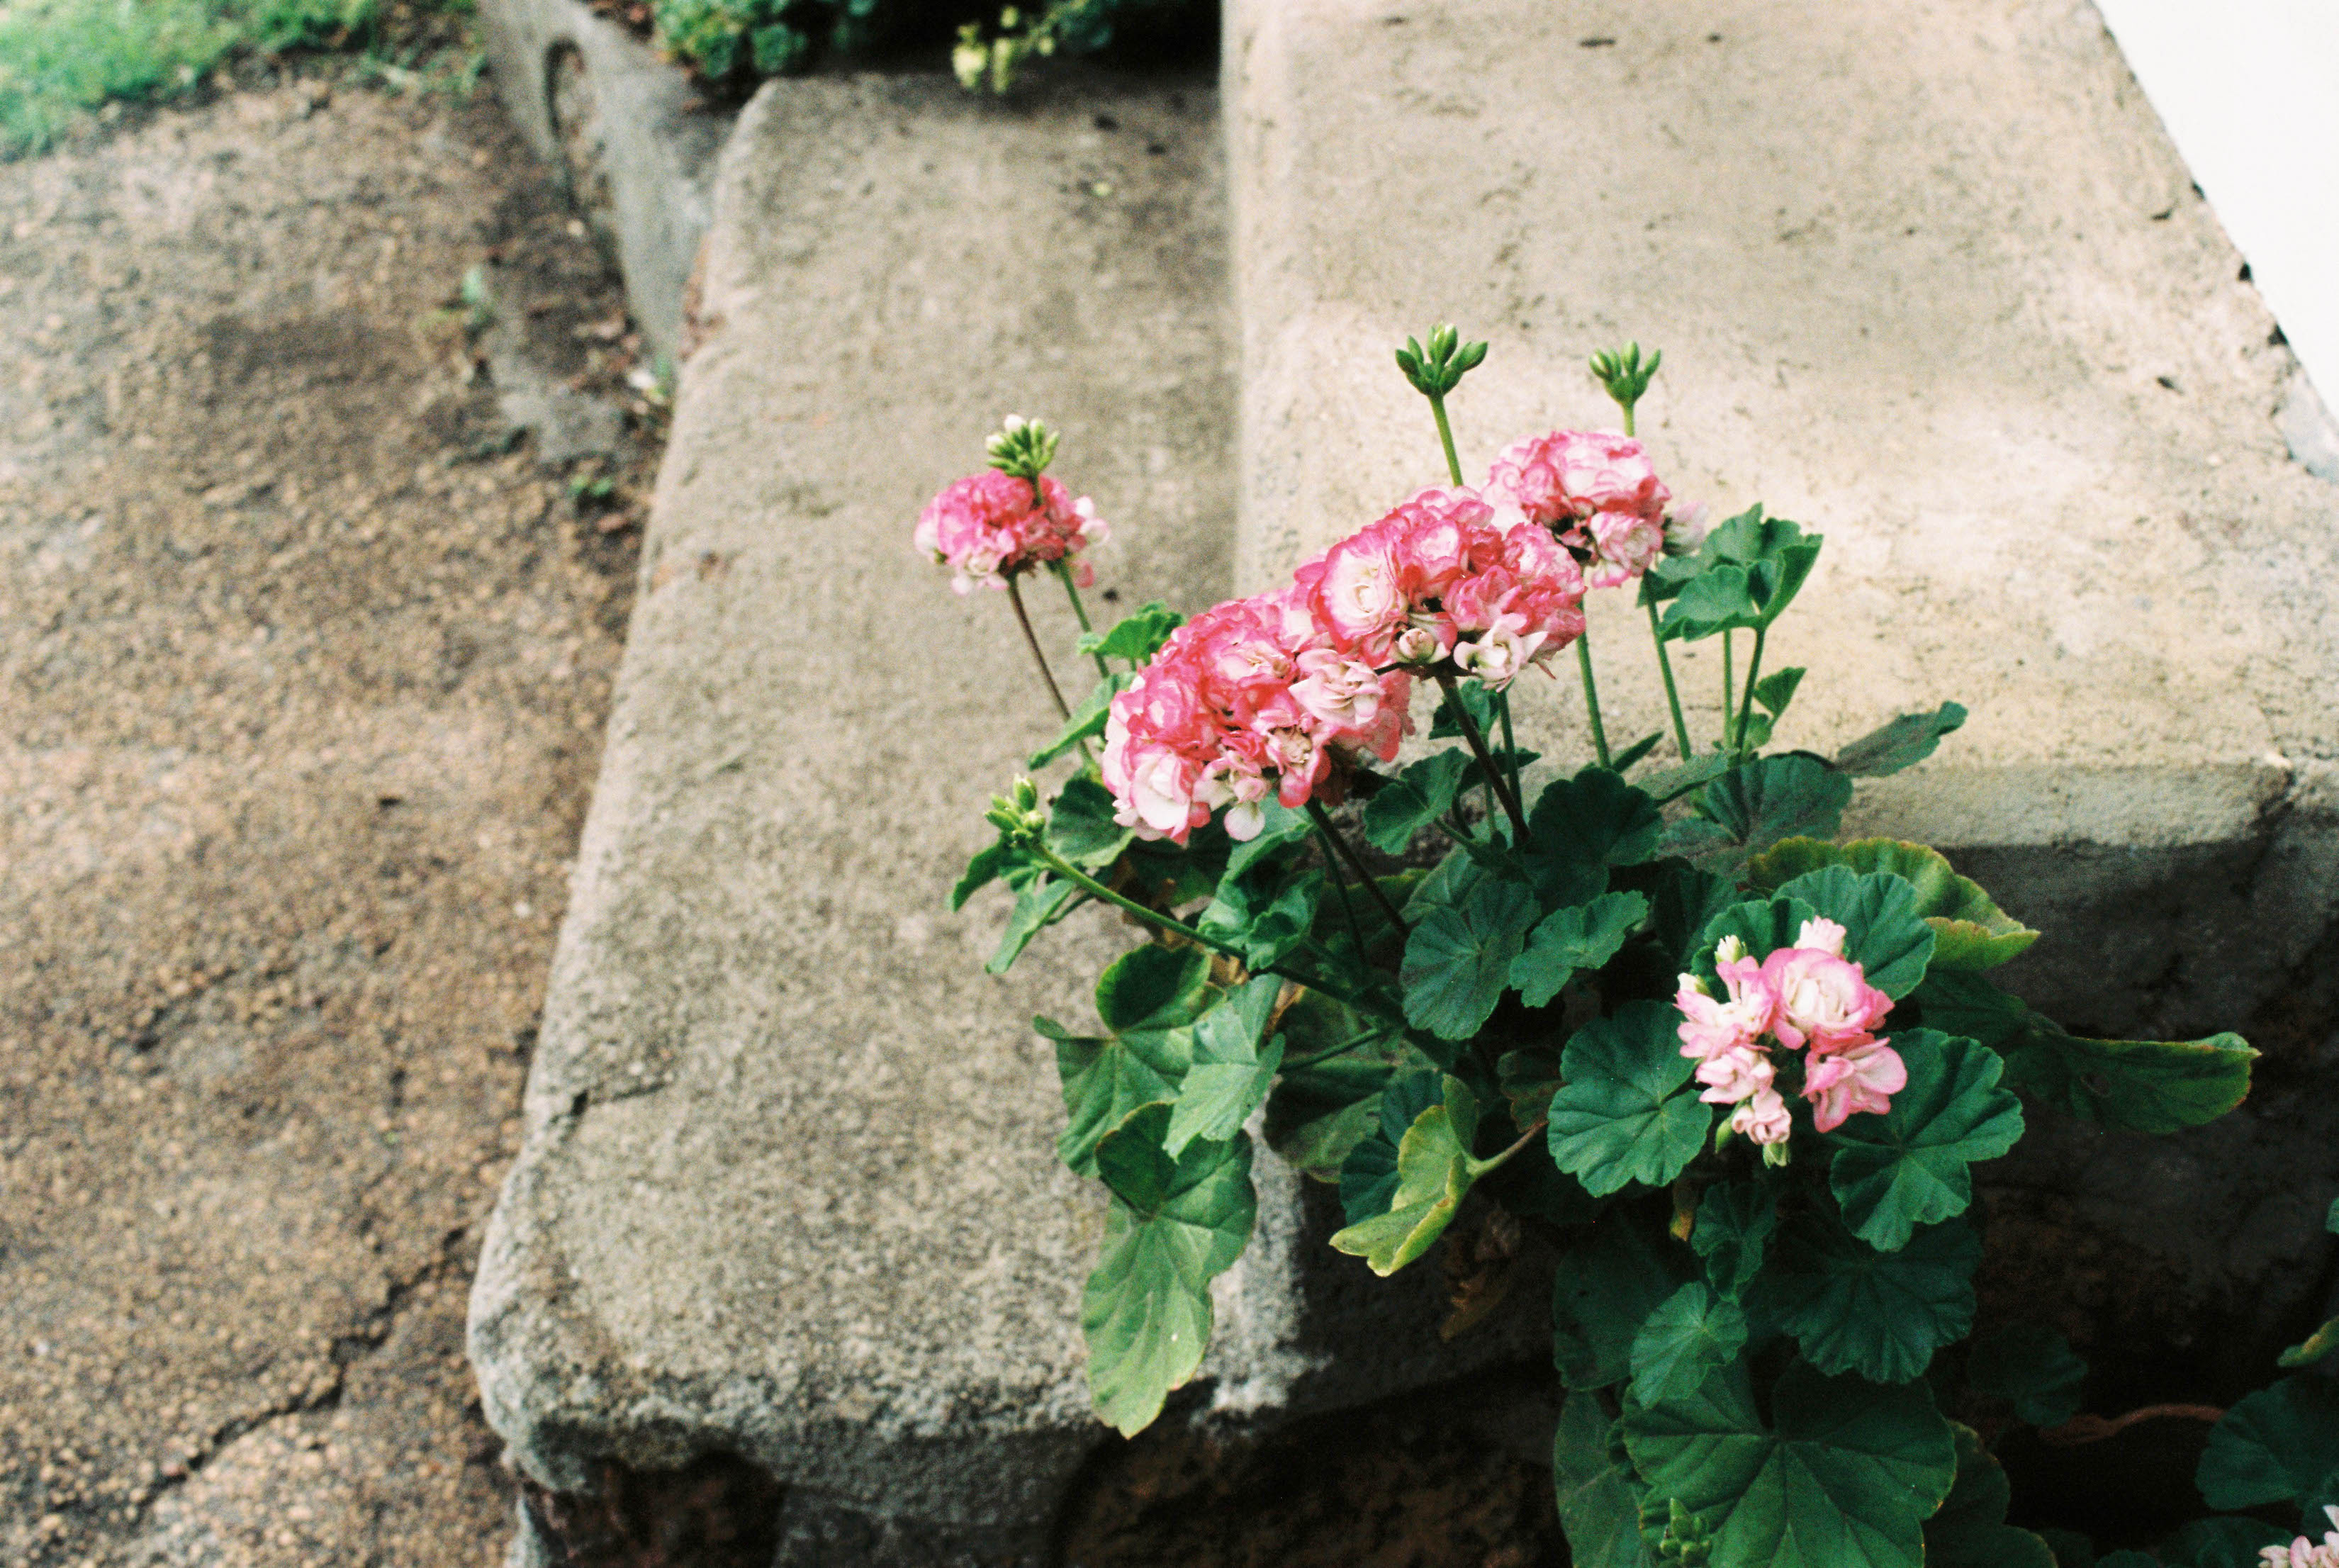 A photo of geraniums on a farm in Bridgetown, Australia the day of a wedding